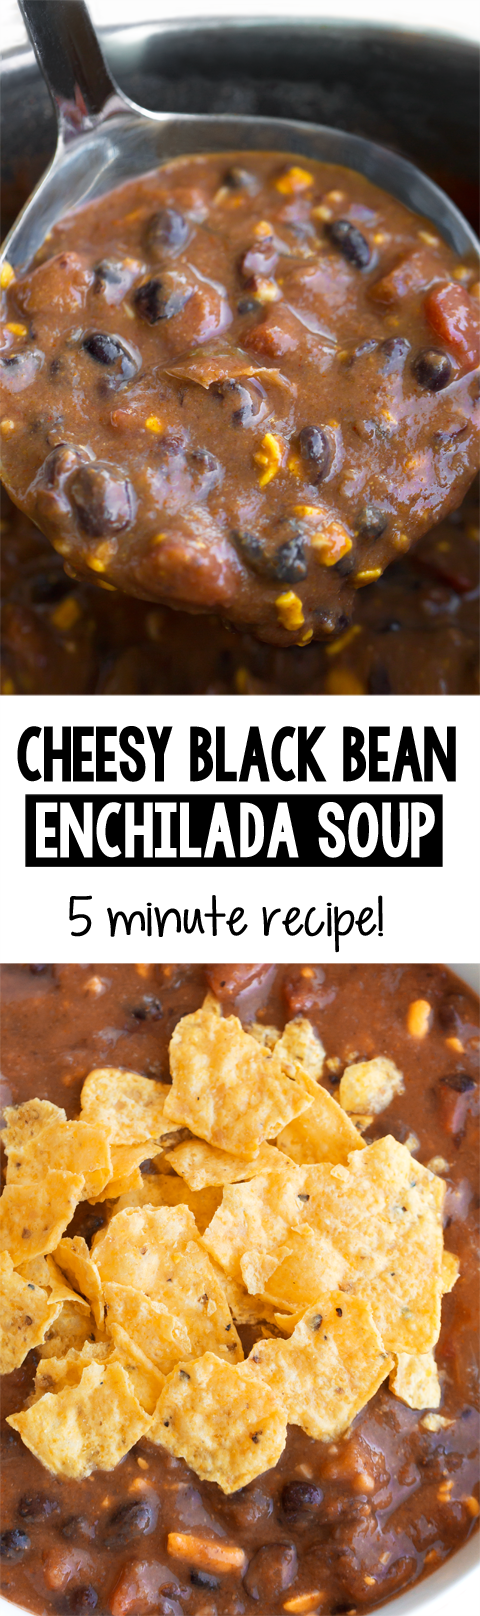 Cheesy Black Bean Enchilada Soup (5 Minute Recipe)